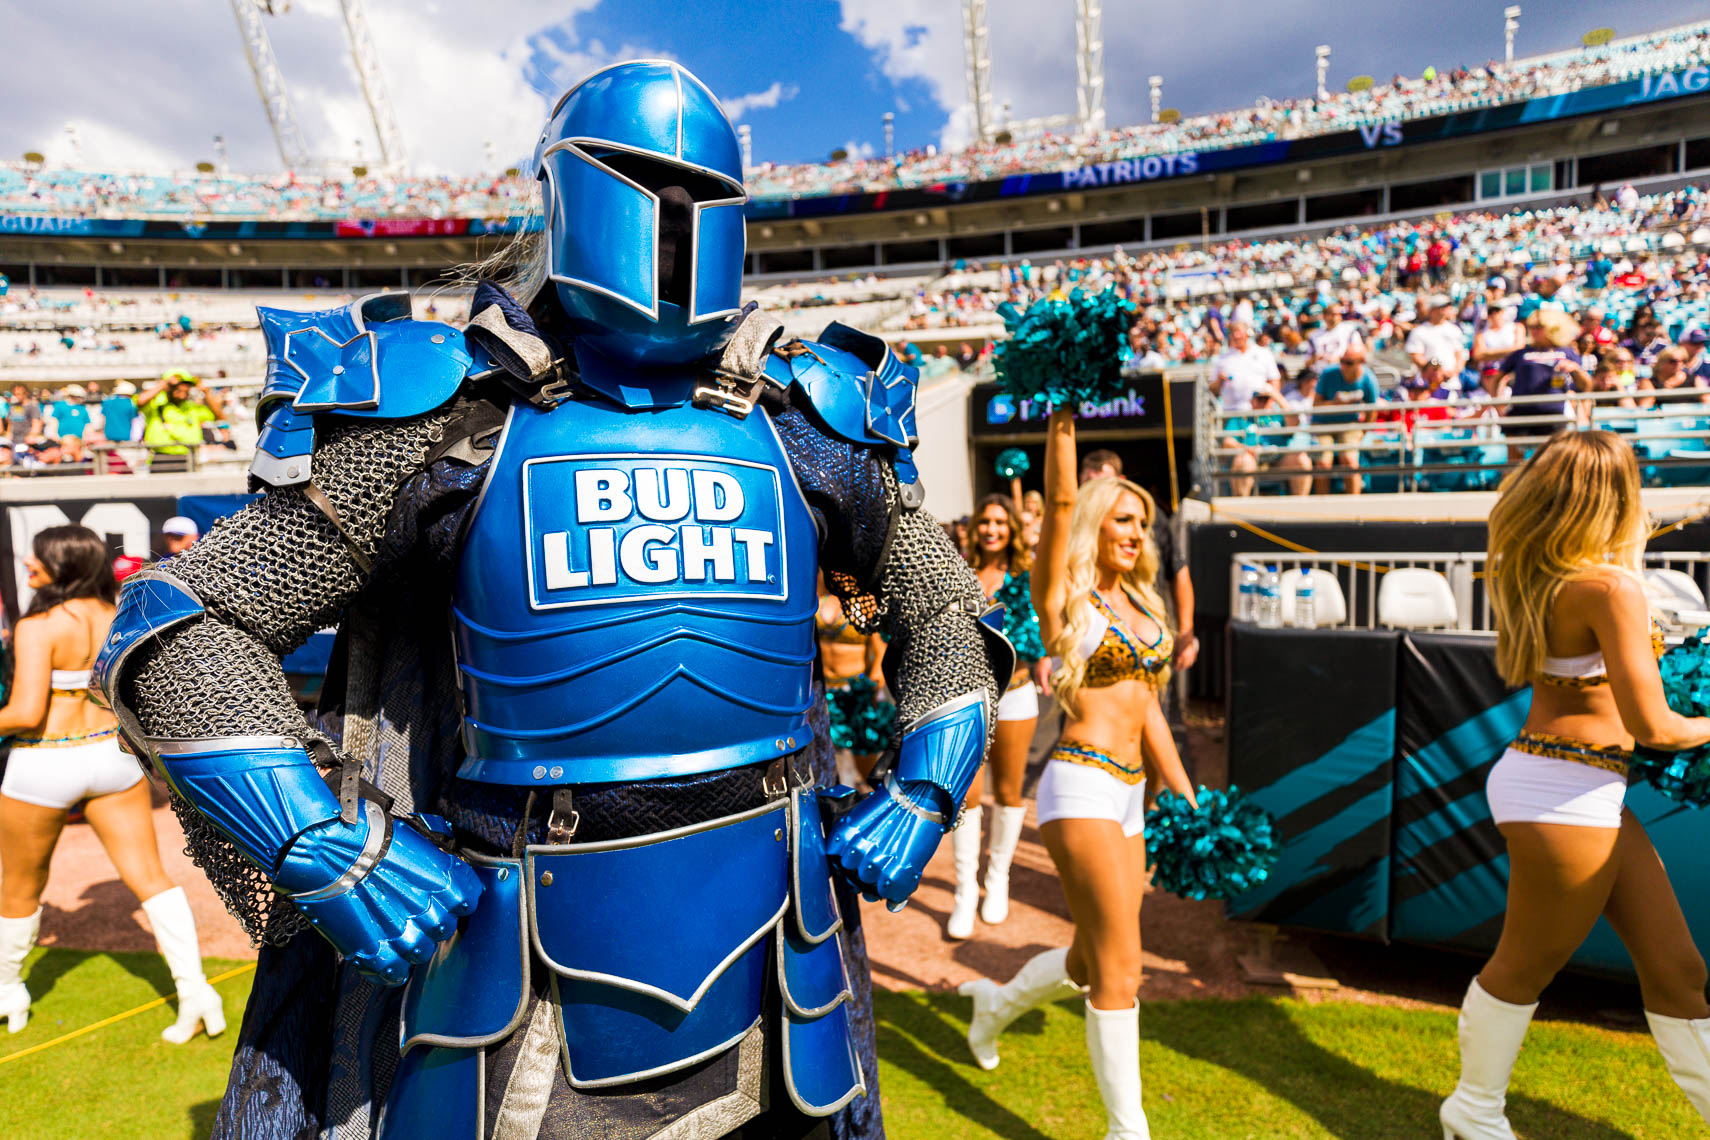 The Bud Light Bud Knight